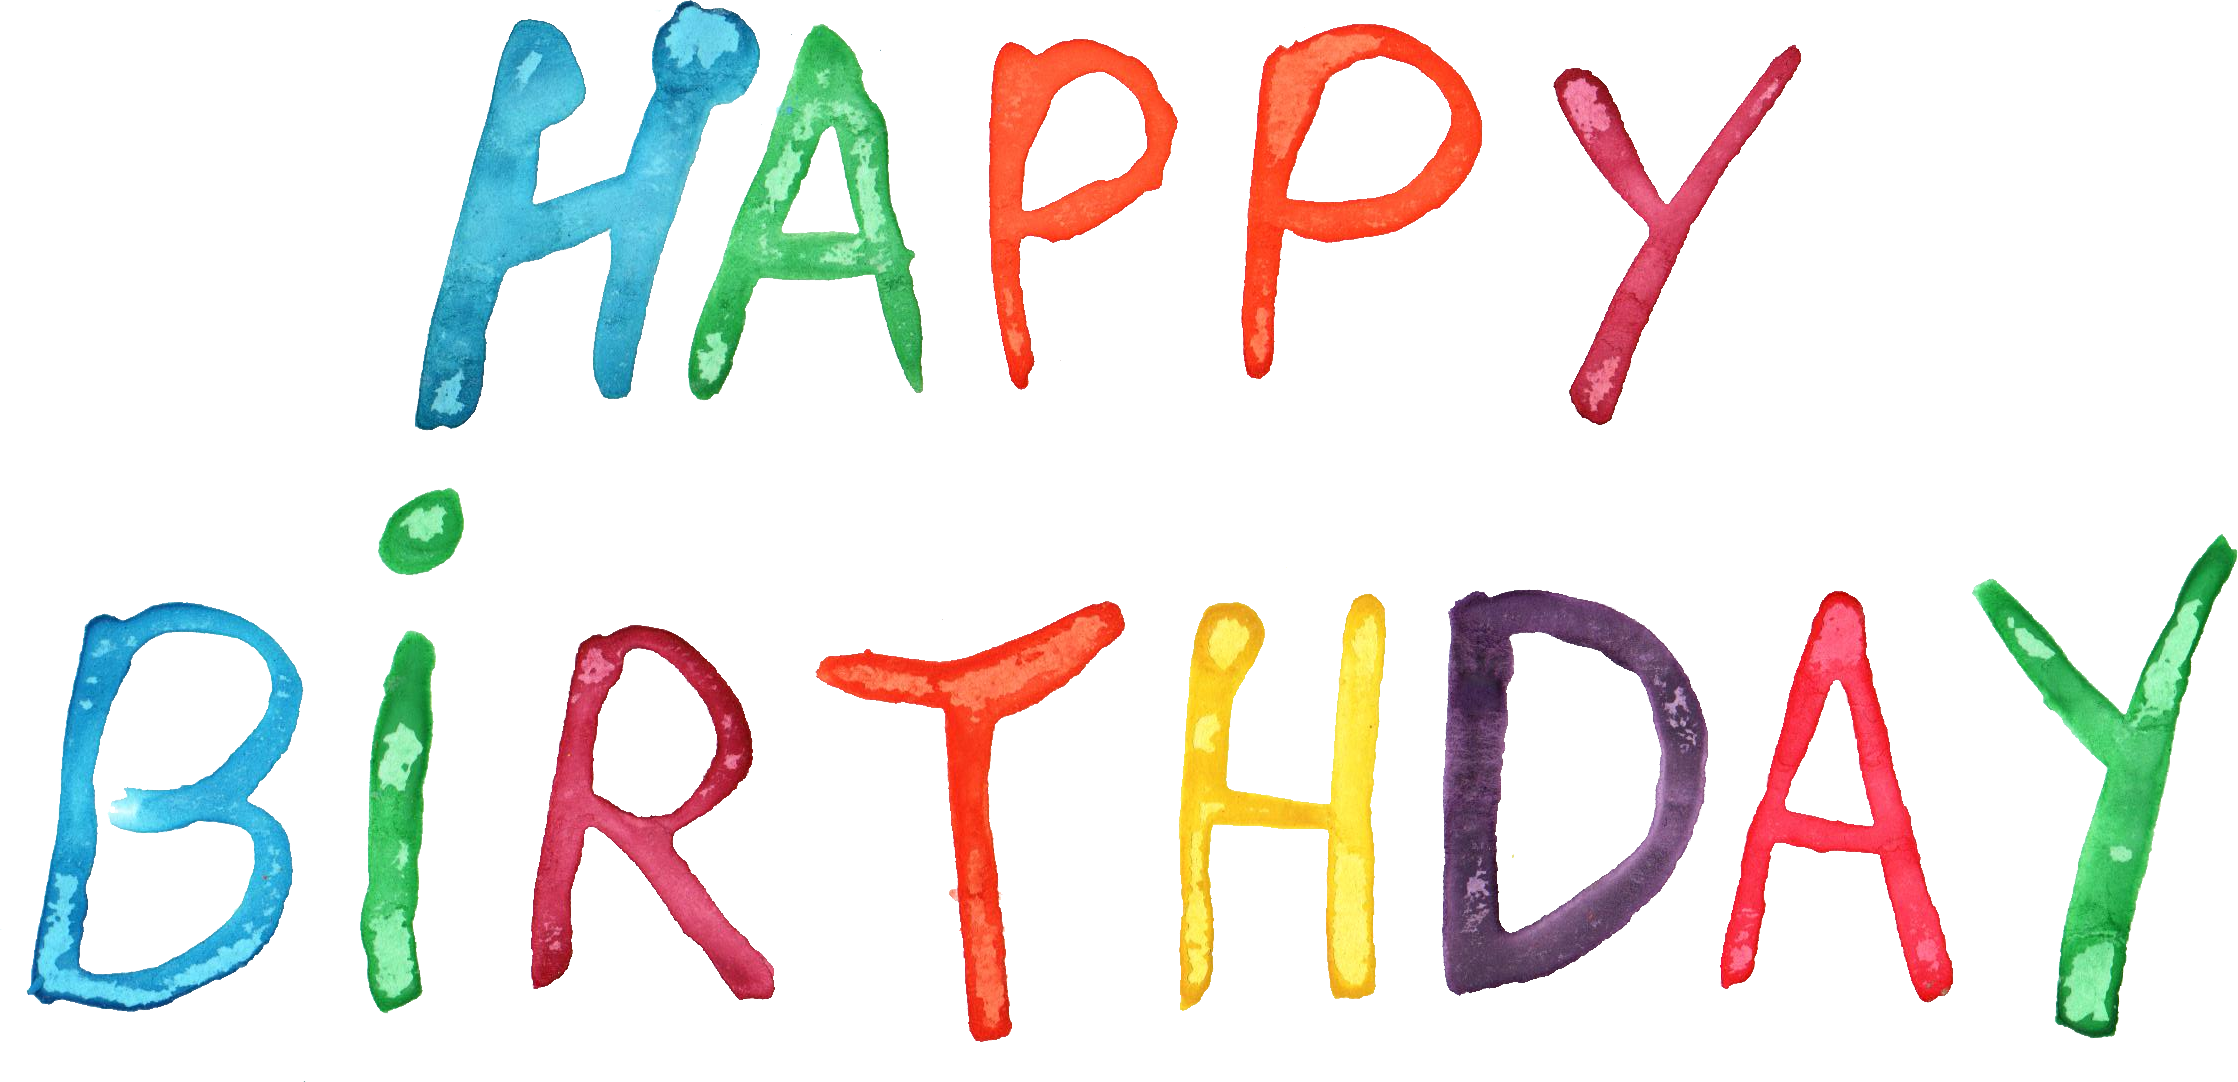 Happy birthday png transparent. Watercolor onlygfx com